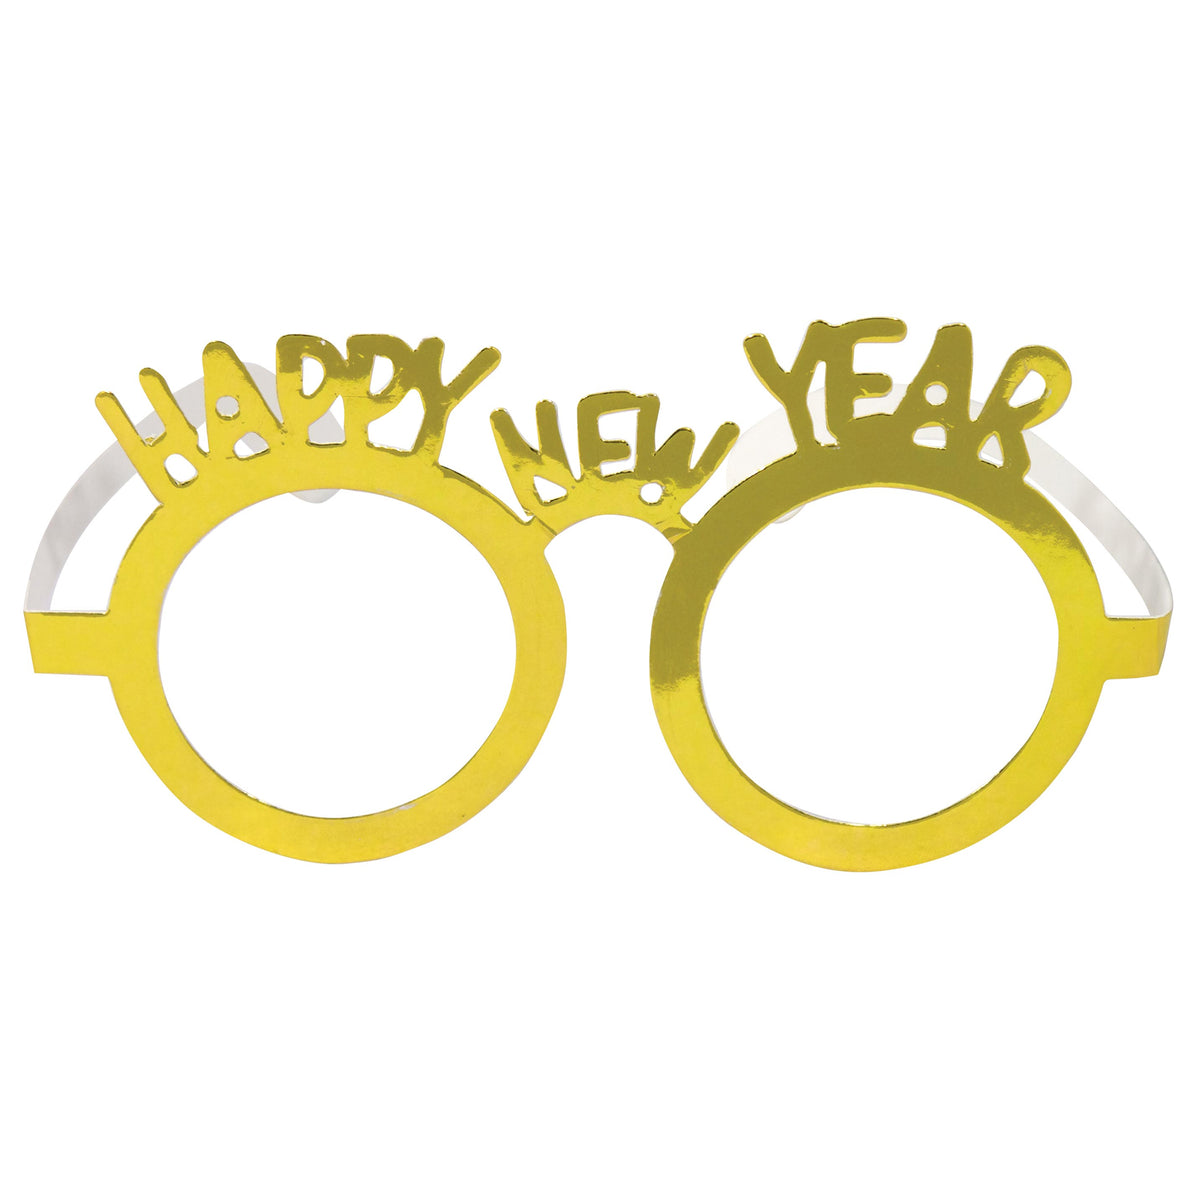 Happy New Year Paper Glasses